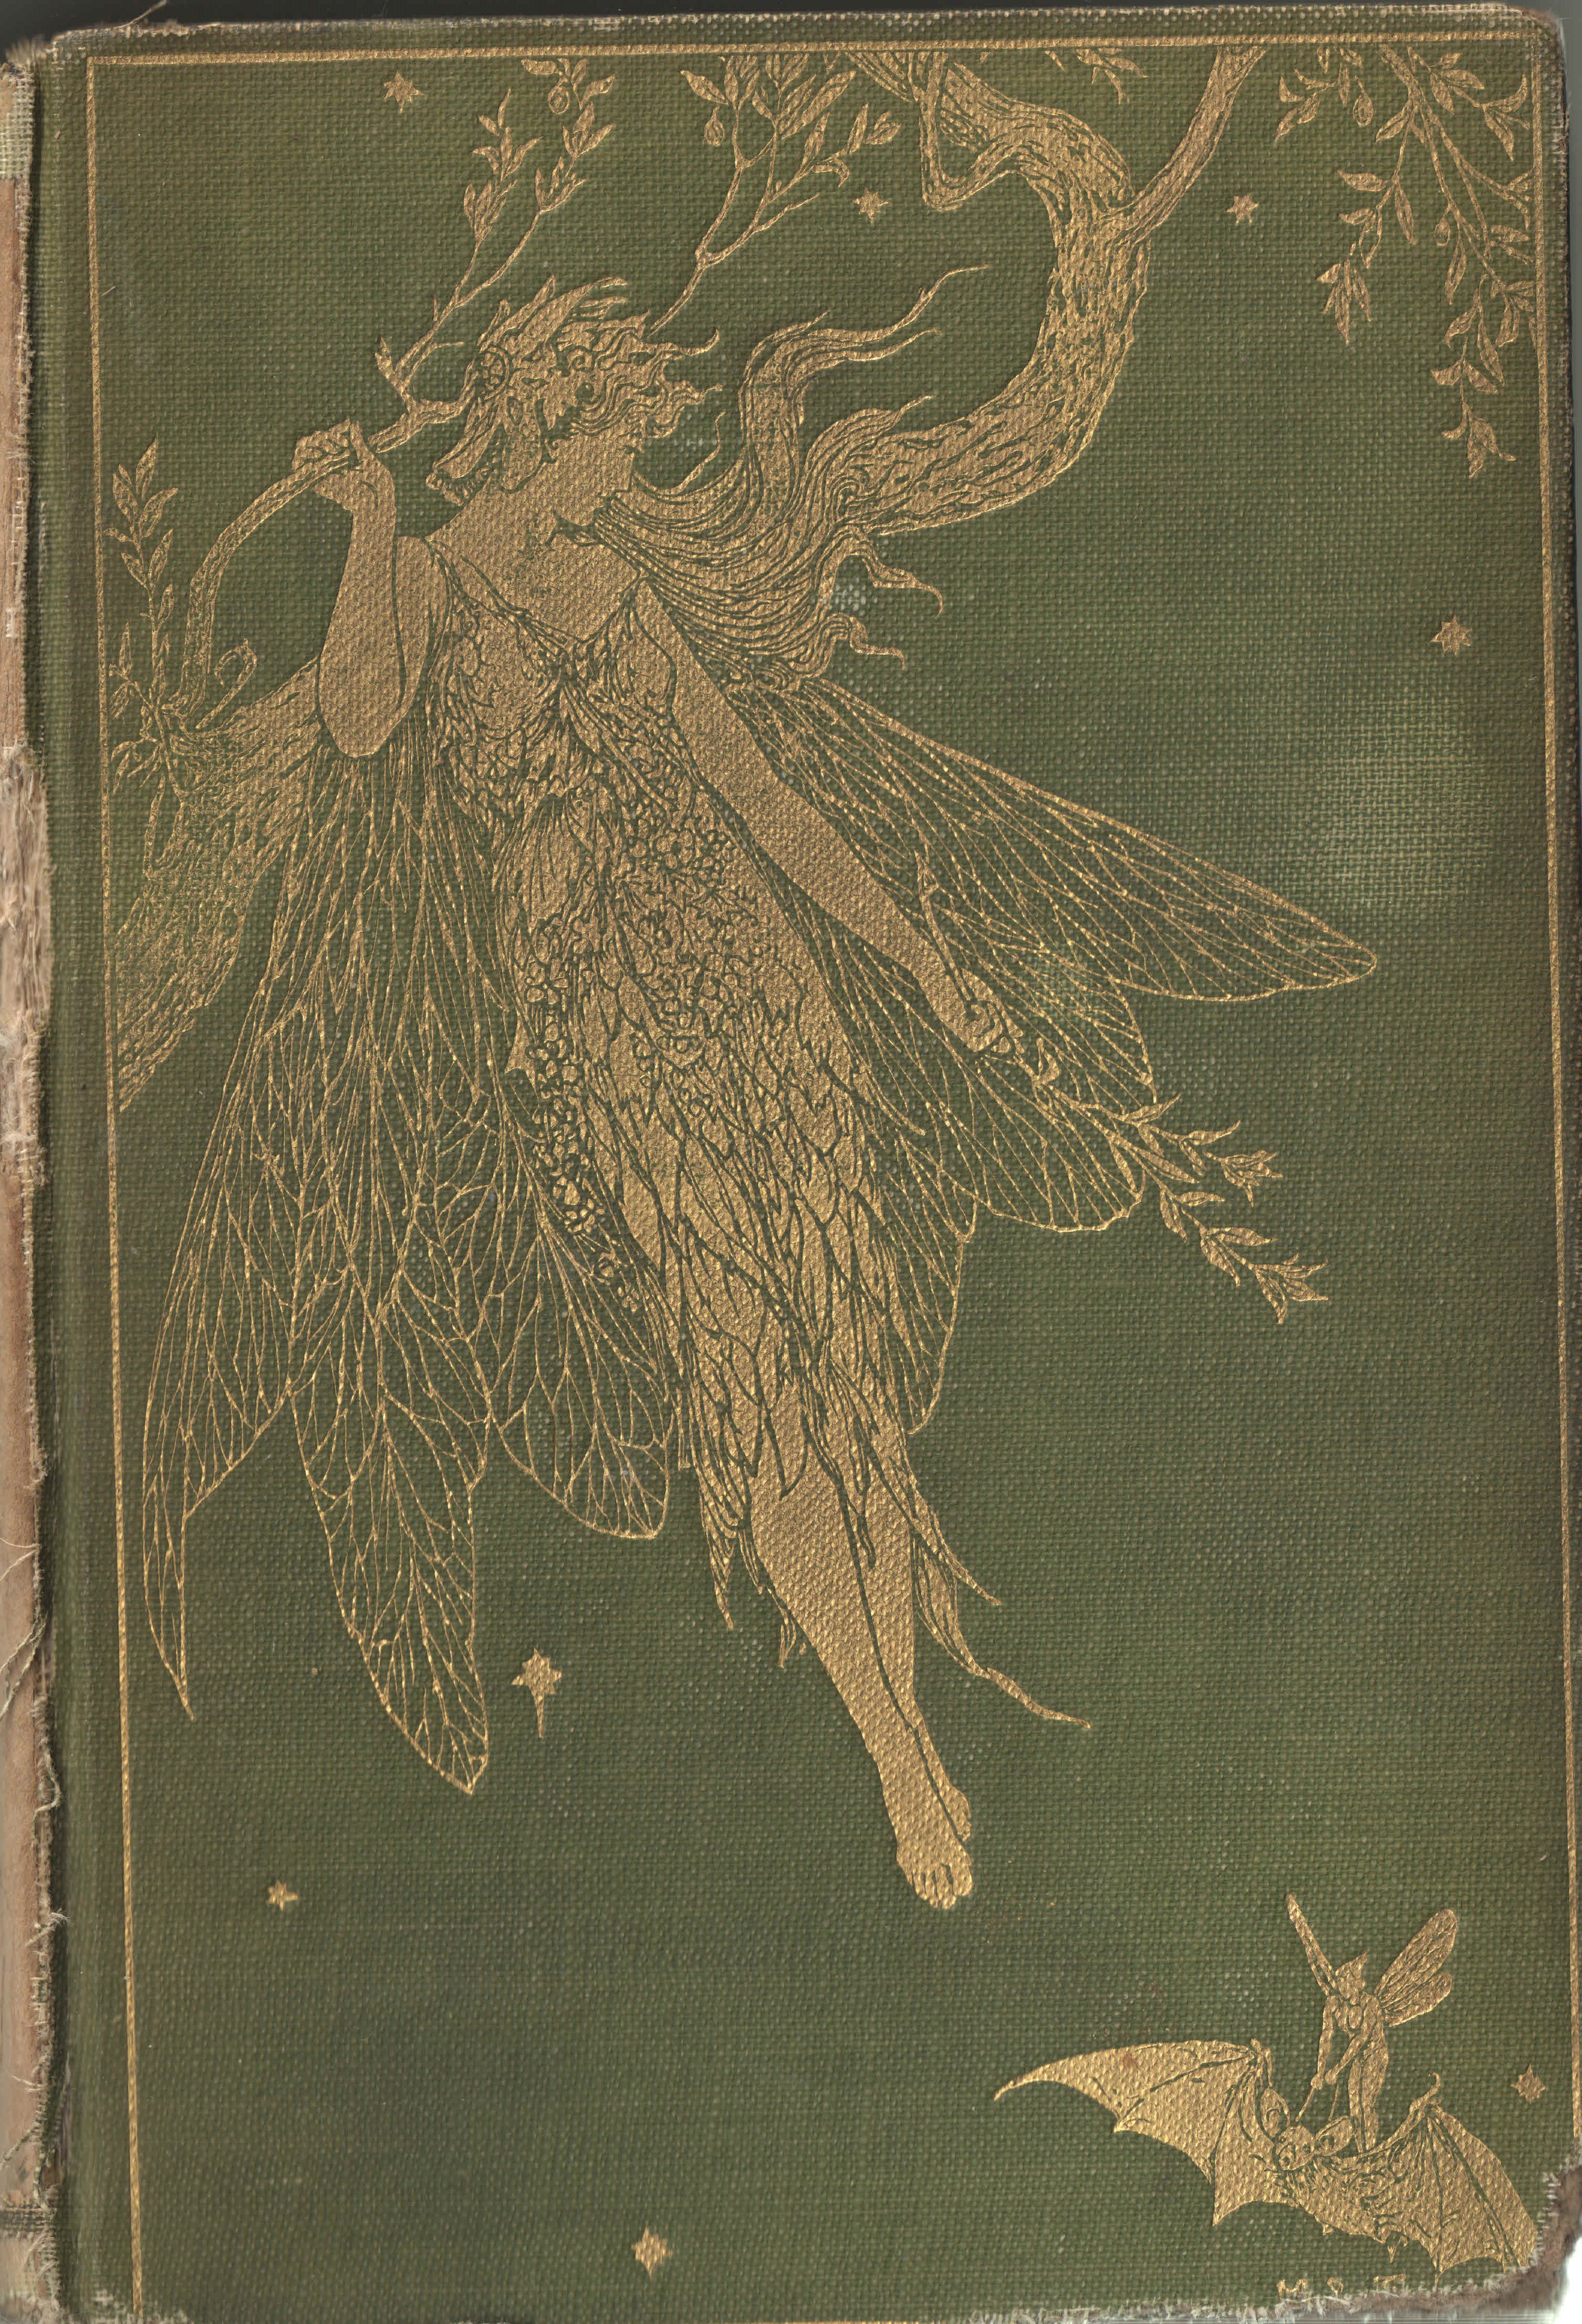 By Longmans, Greenm and Co.(Life time: book cover art not attributed, in publisher name) [Public domain], via Wikimedia Commons